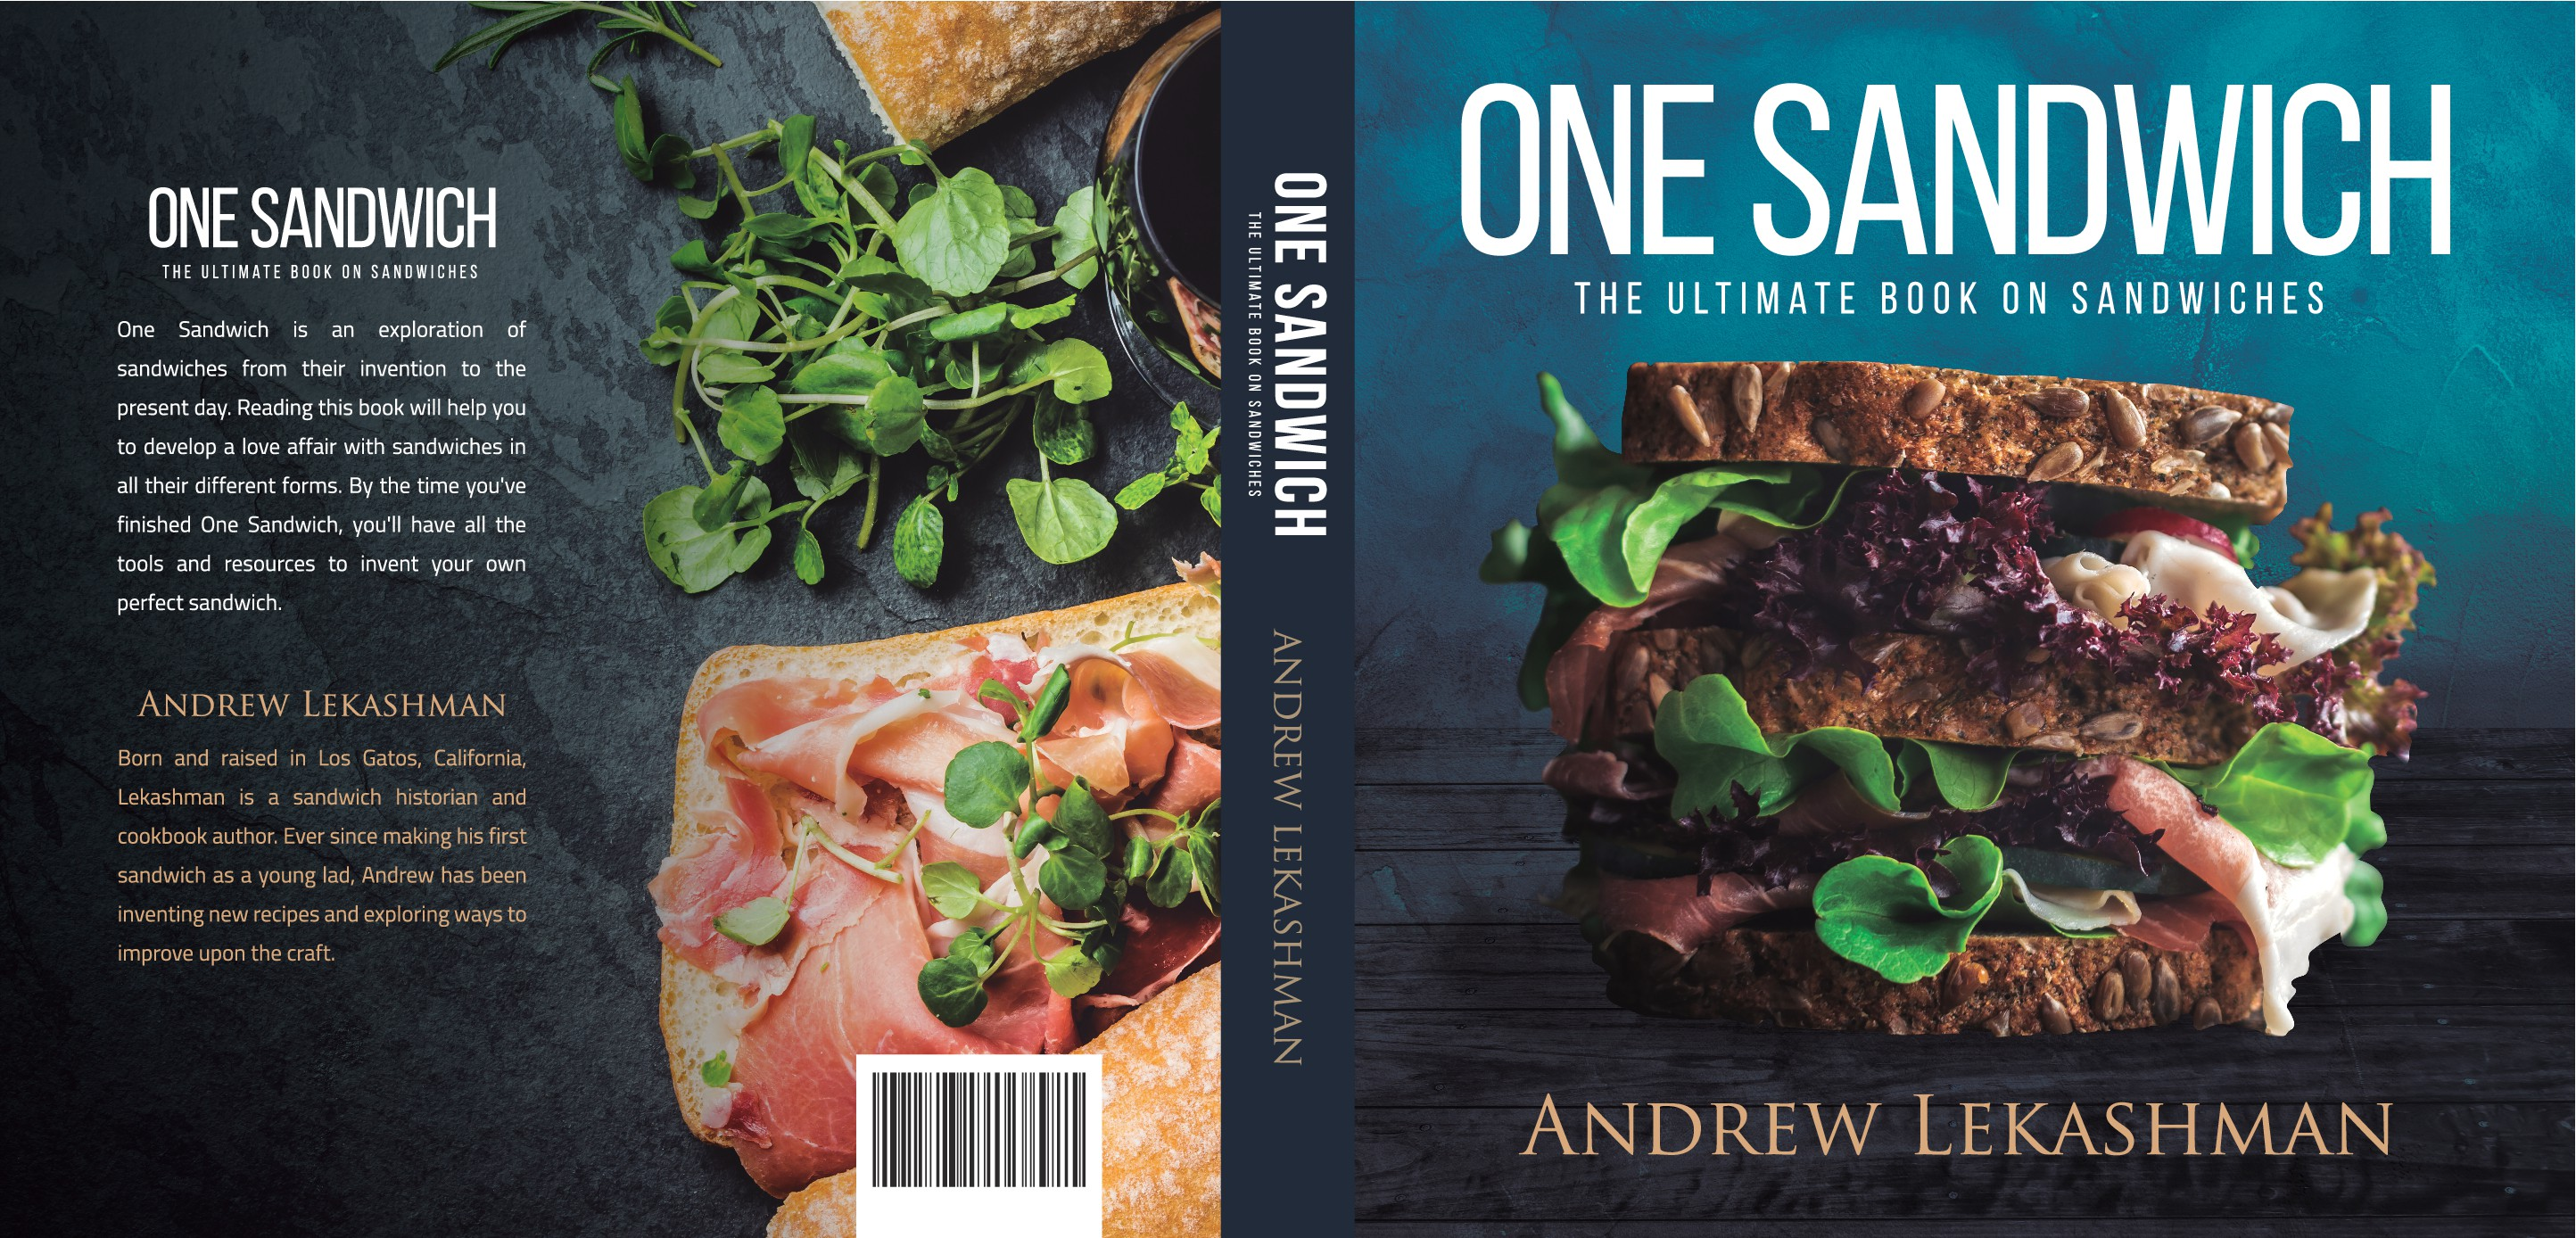 One Sandwich Book Cover - An Exploration of Sandwiches